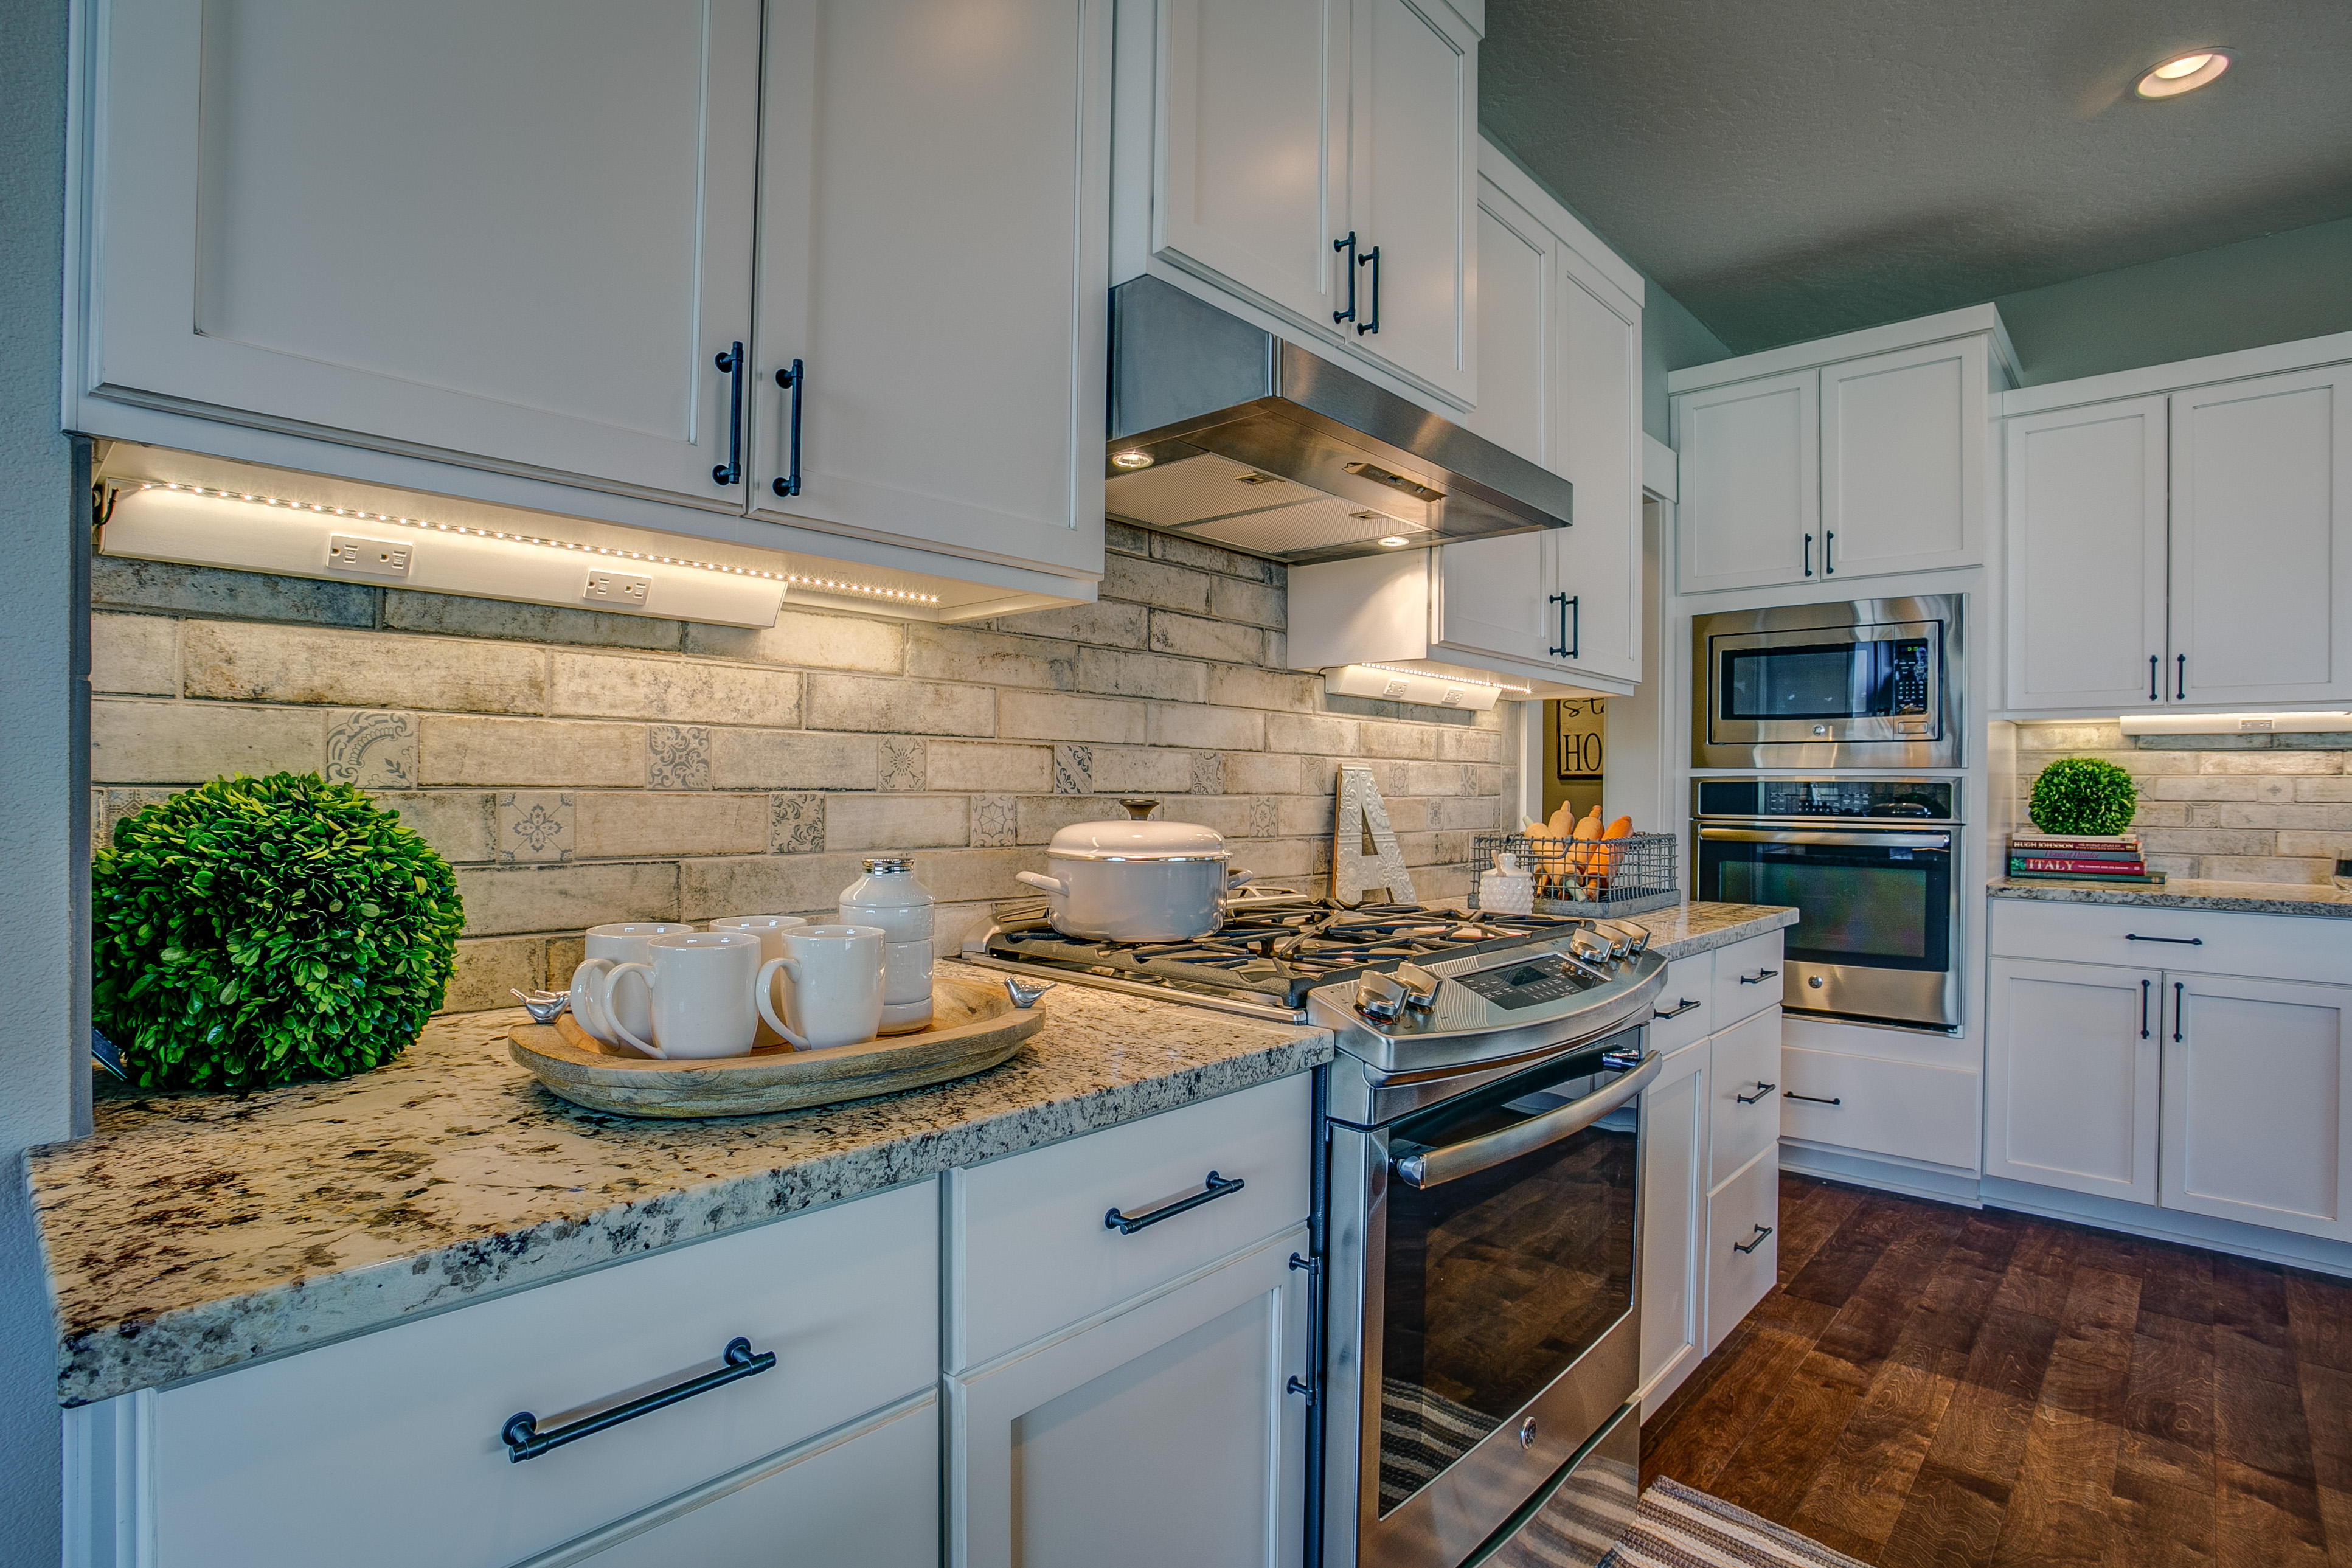 Kitchen backsplash with granite counters and white cabinets.